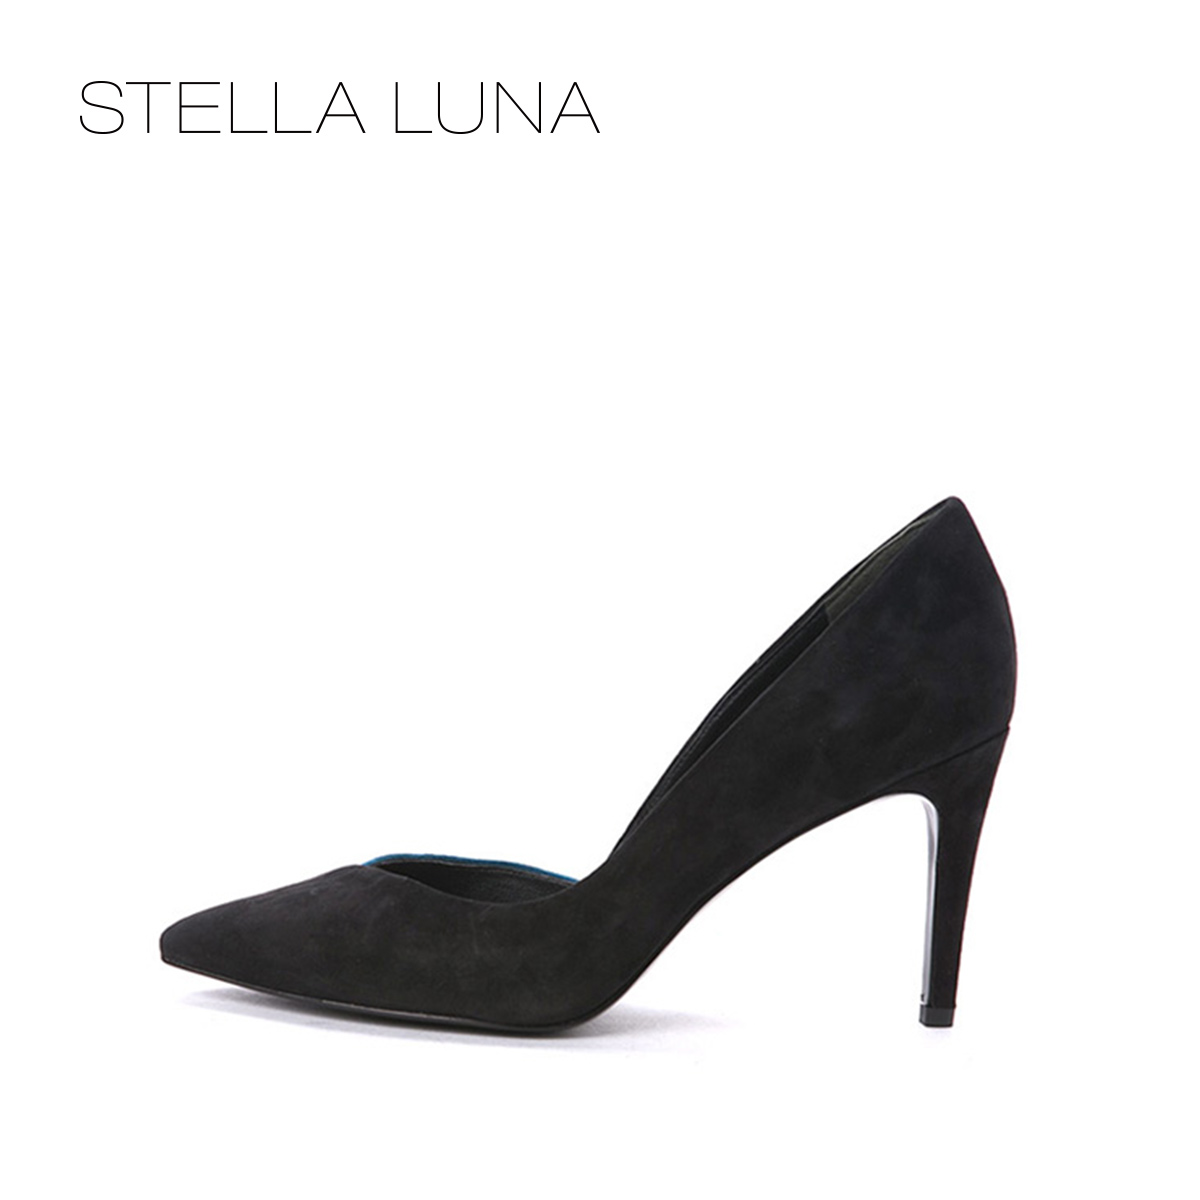 STELLA LUNA women's shoes autumn casual high-heeled shoes women's shallow mouth fashion shoes